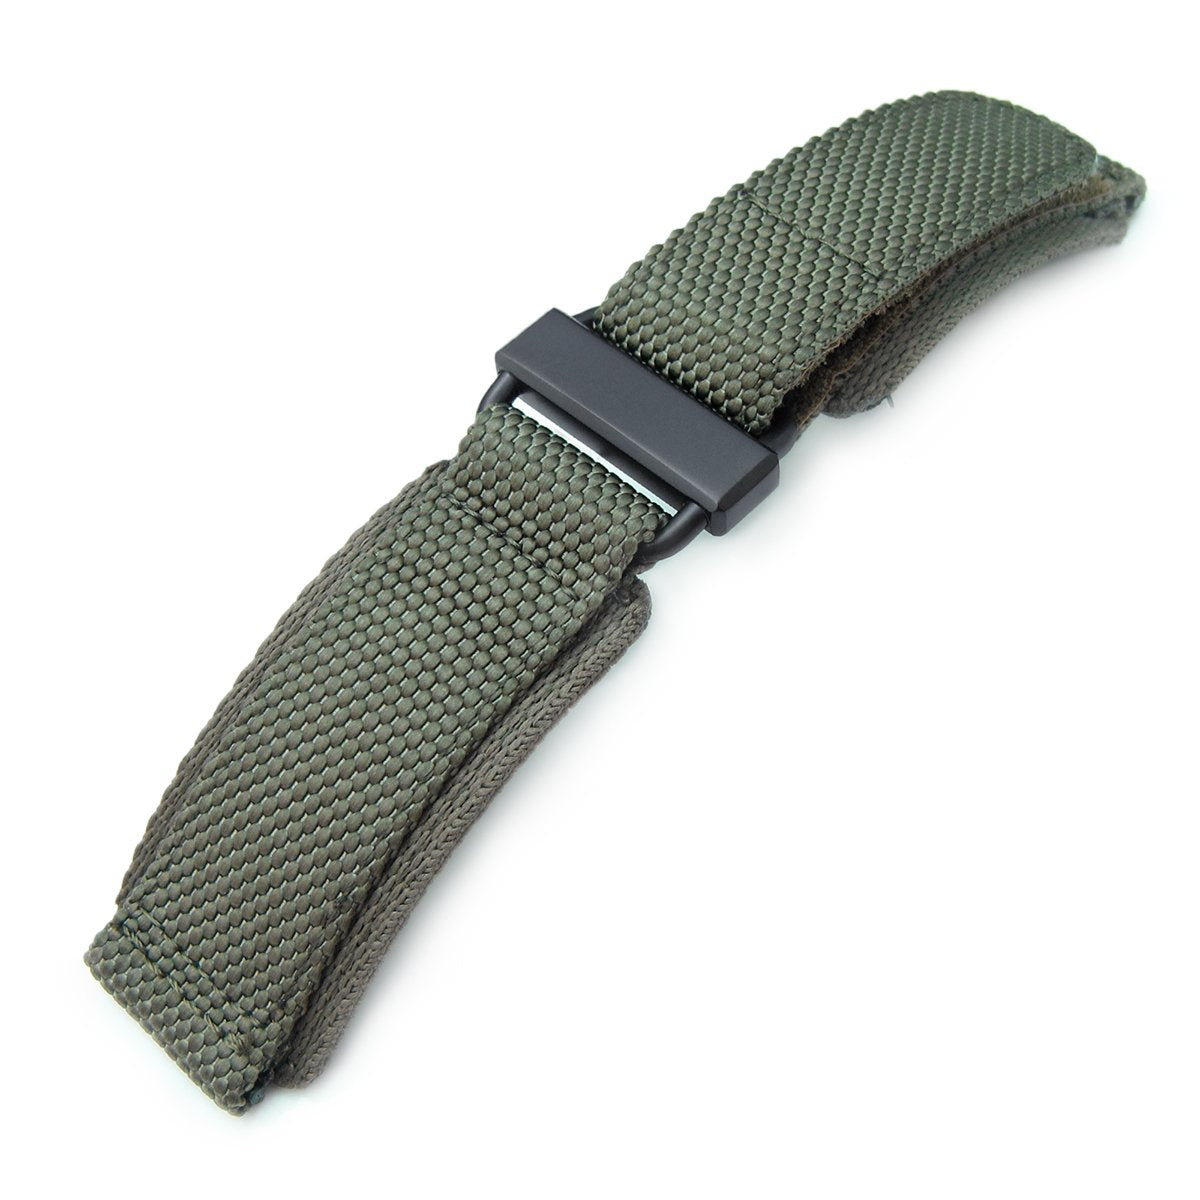 22mm MiLTAT Honeycomb Military Green Nylon Velcro Fastener Watch Strap PVD Black Stainless Buckle XL Strapcode Watch Bands